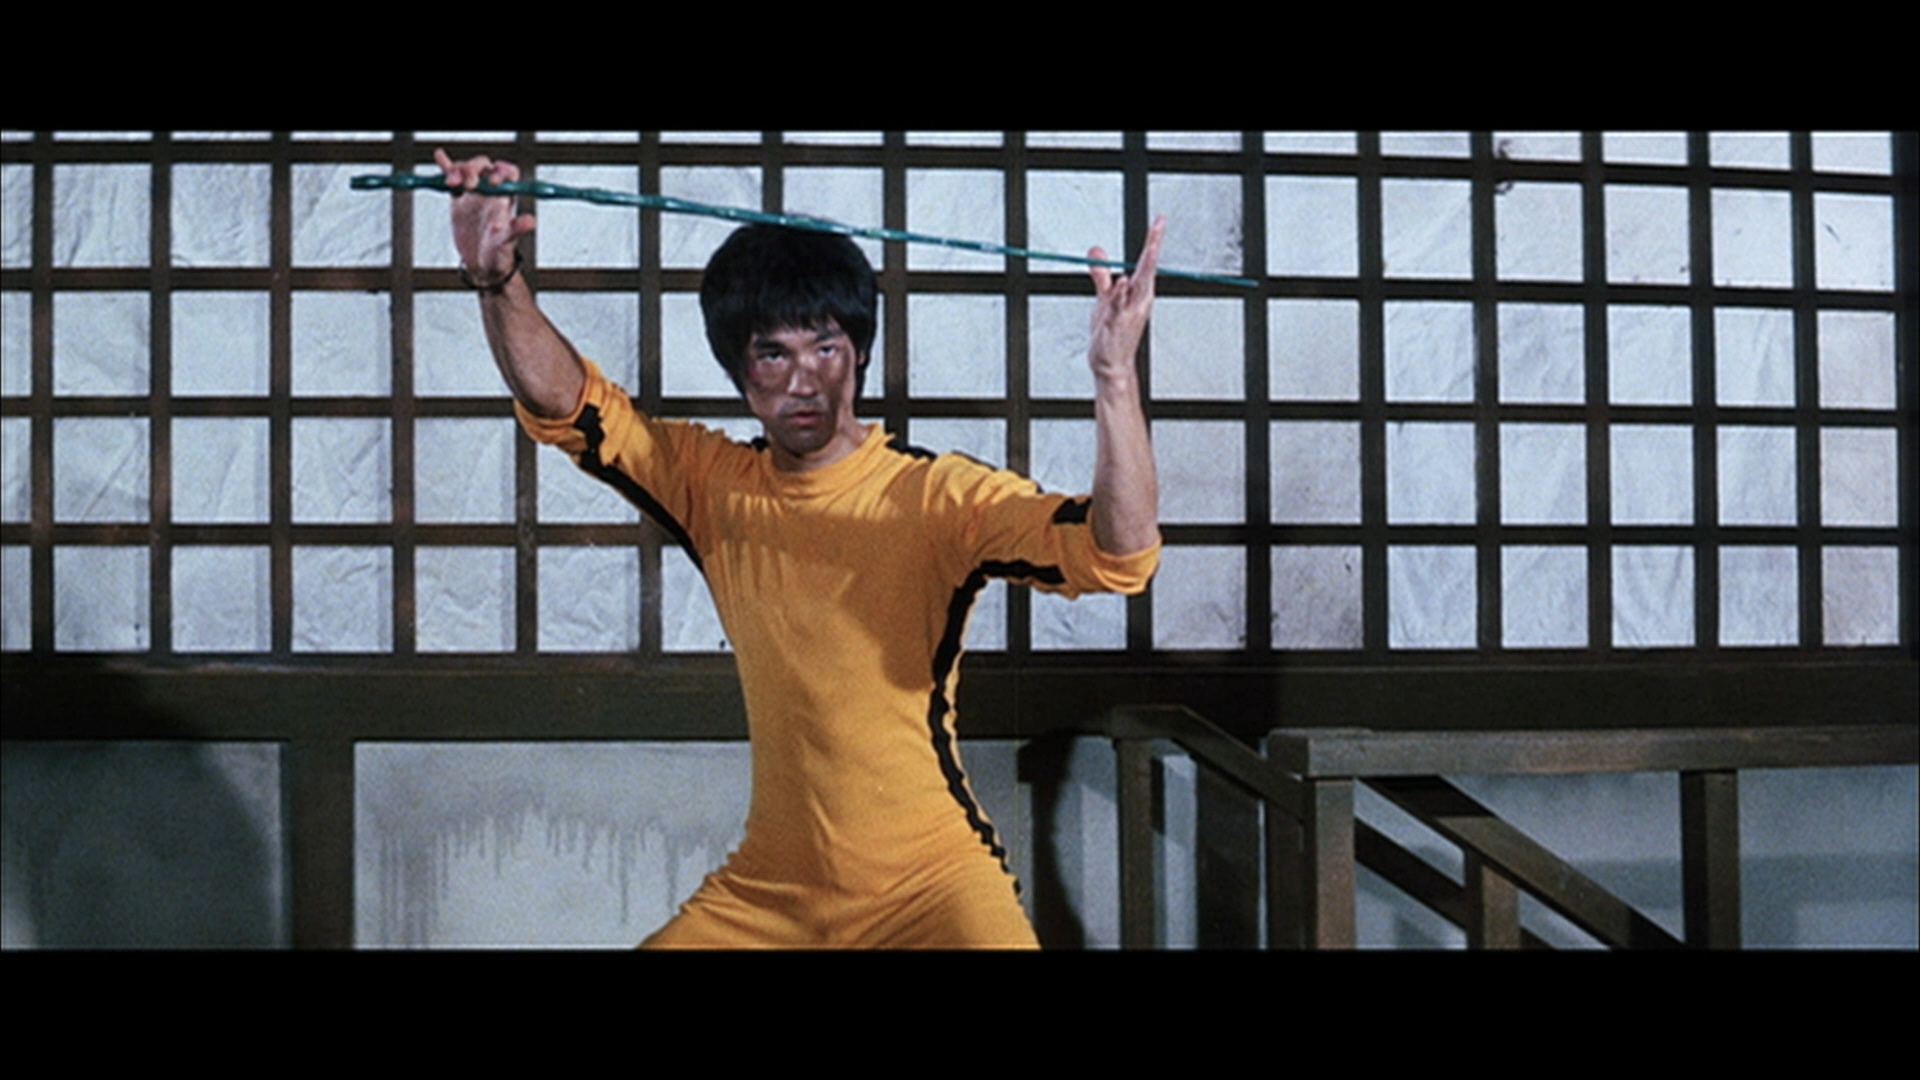 Bruce Lee in L'ultimo combattimento chen triade game of death cinema kung fu action movies hong kon cultstories